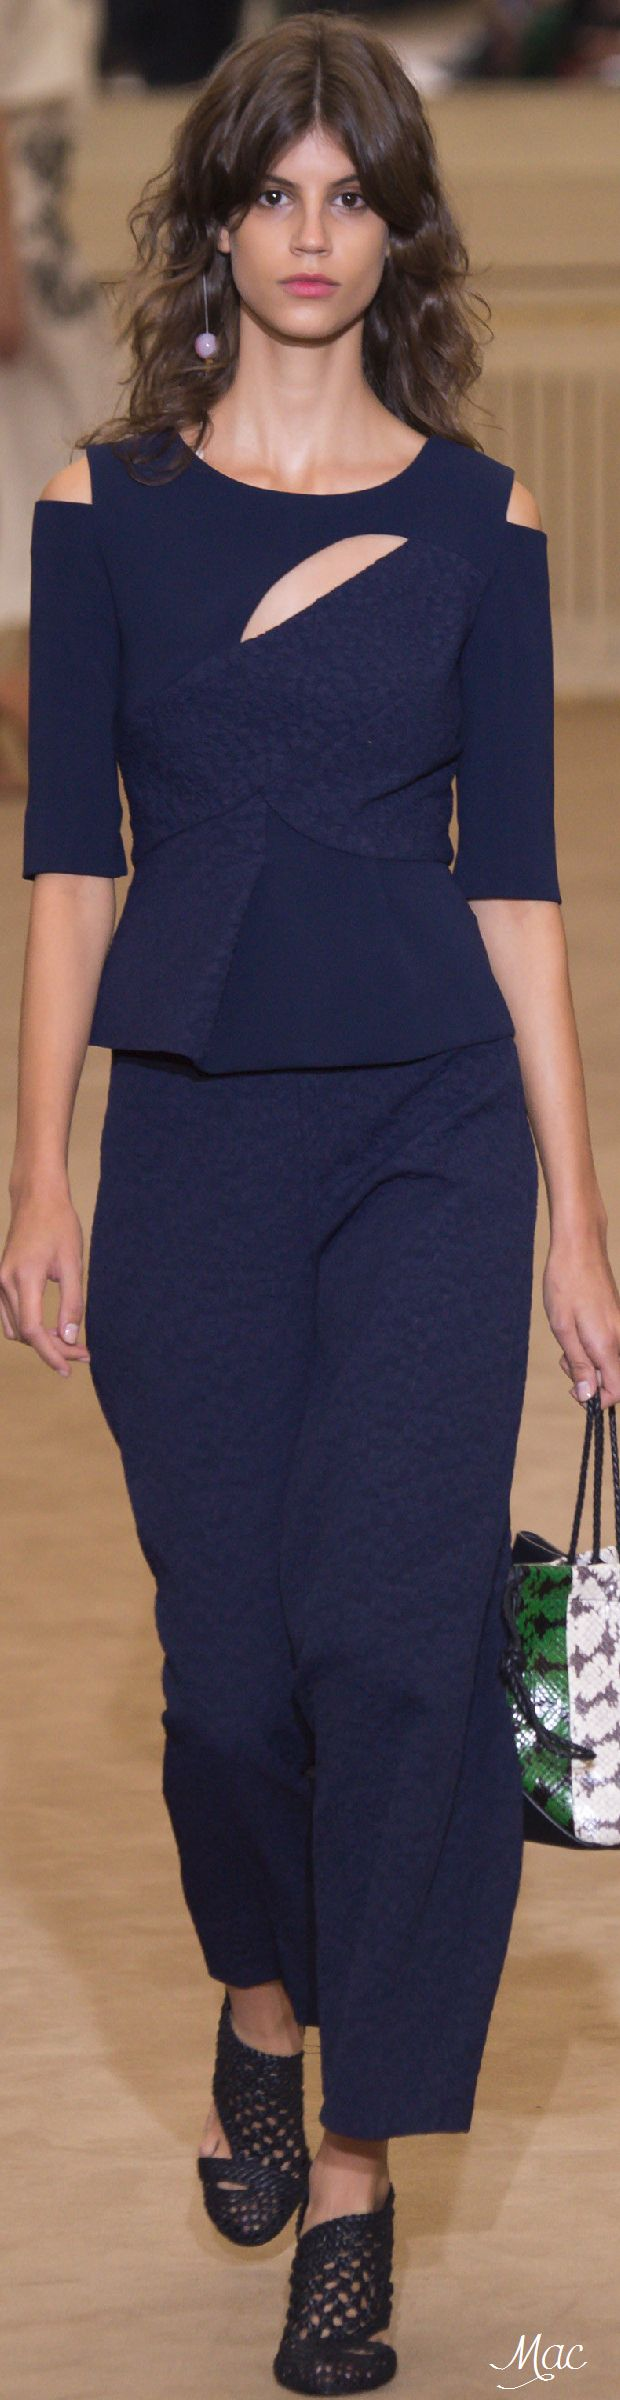 Spring 2016 Ready-to-Wear Roland Mouret women fashion outfit clothing style apparel @roressclothes closet ideas